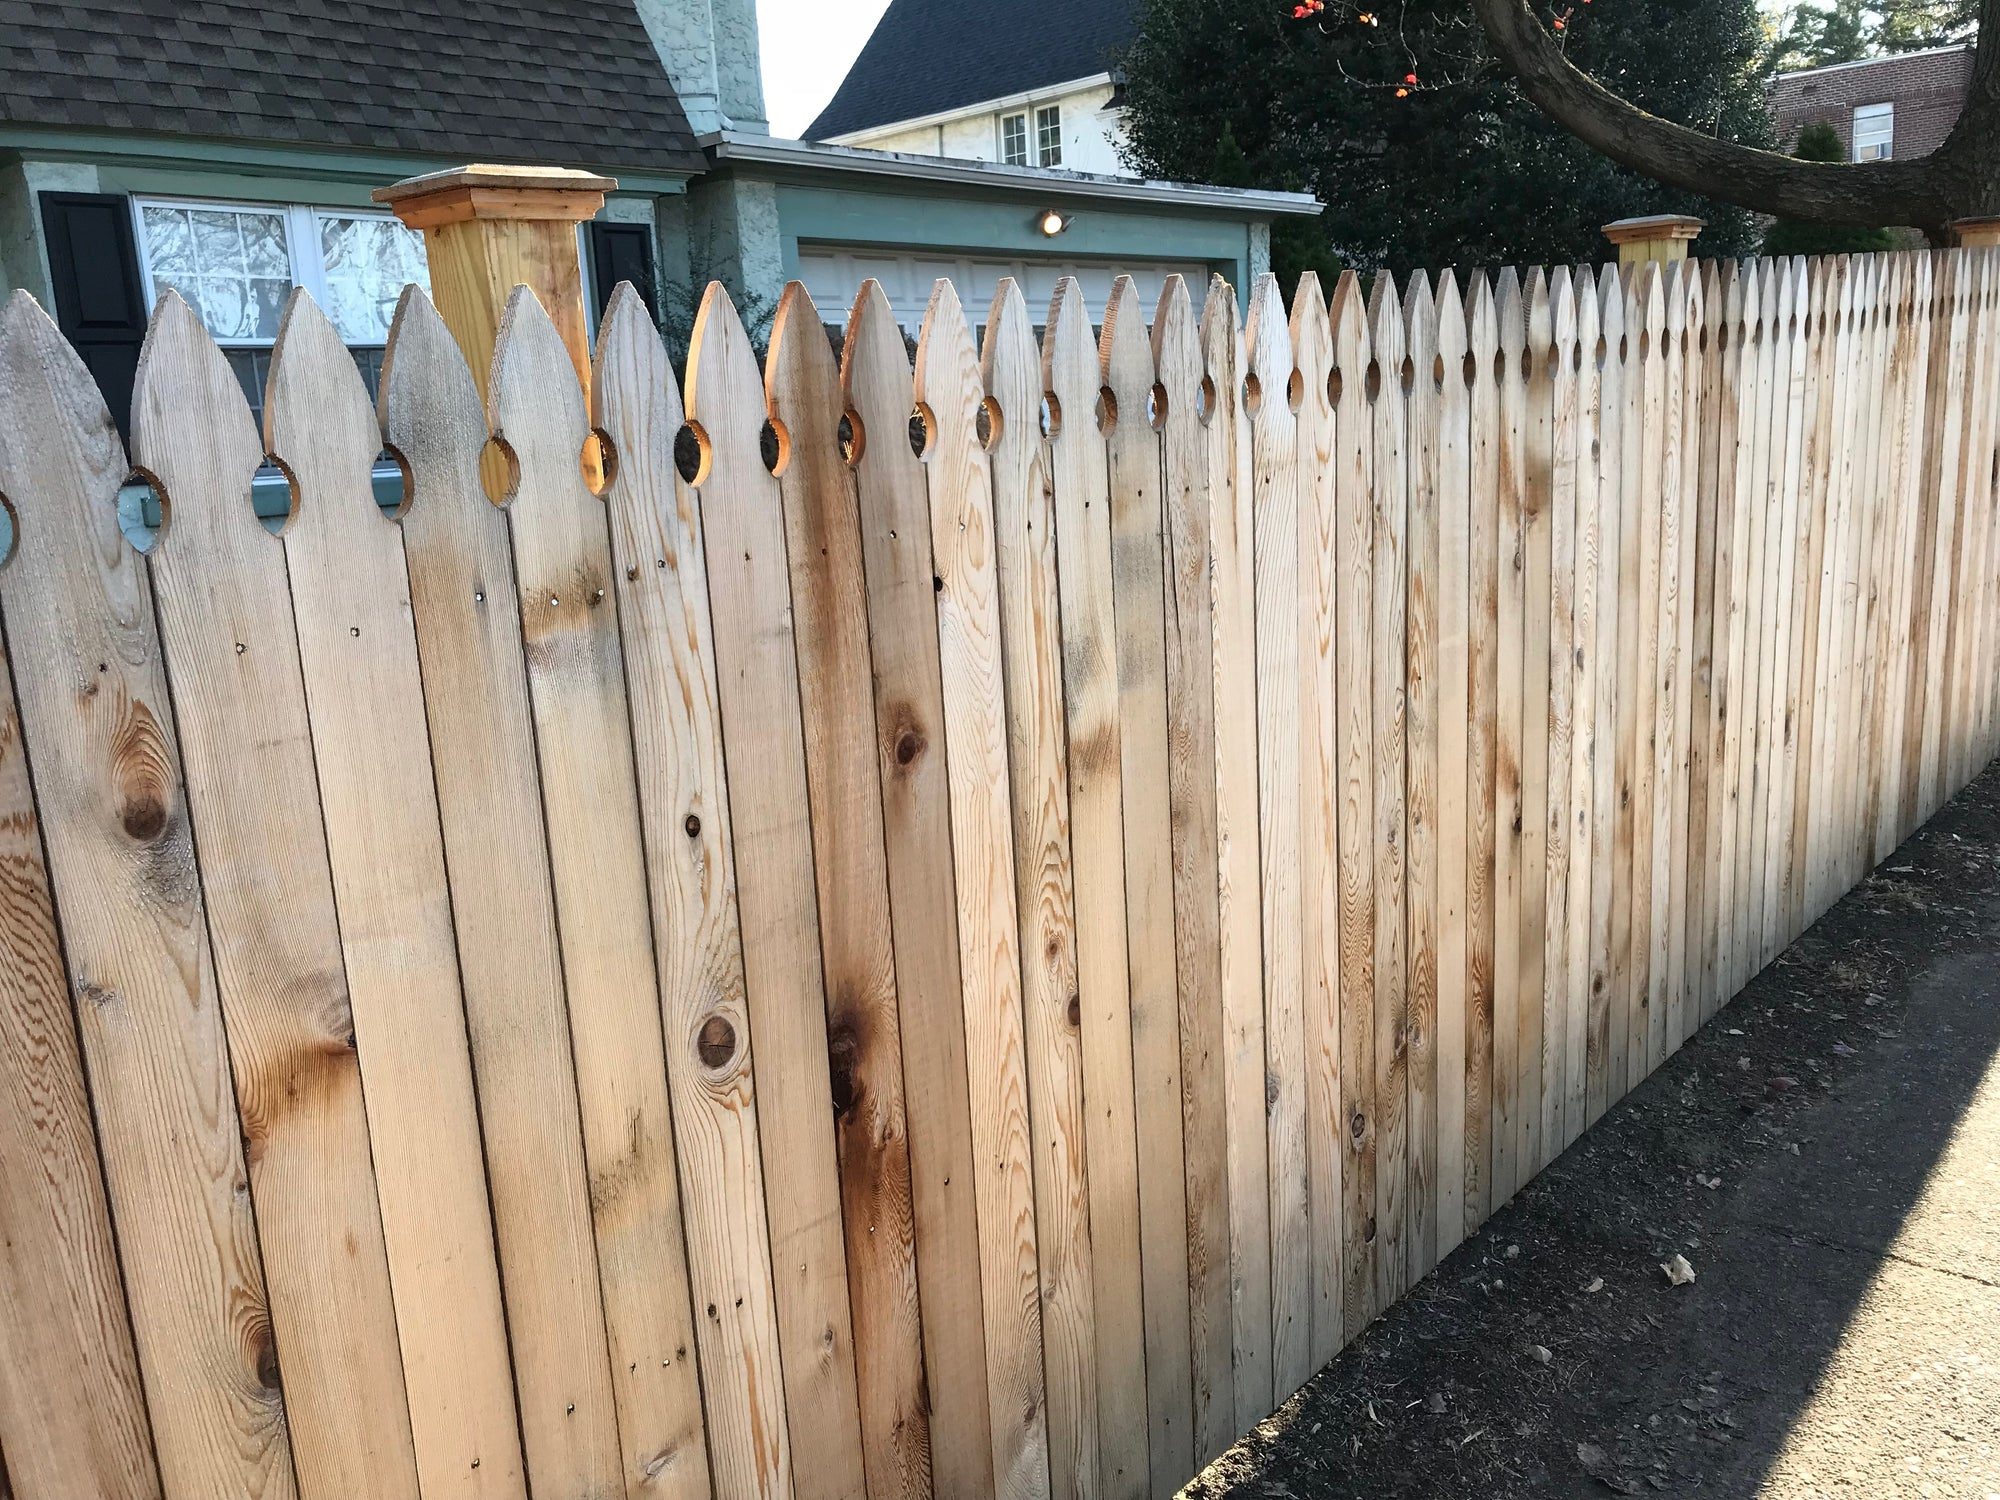 PA's Best Wood Fence contractor serving SE Pennsylvania